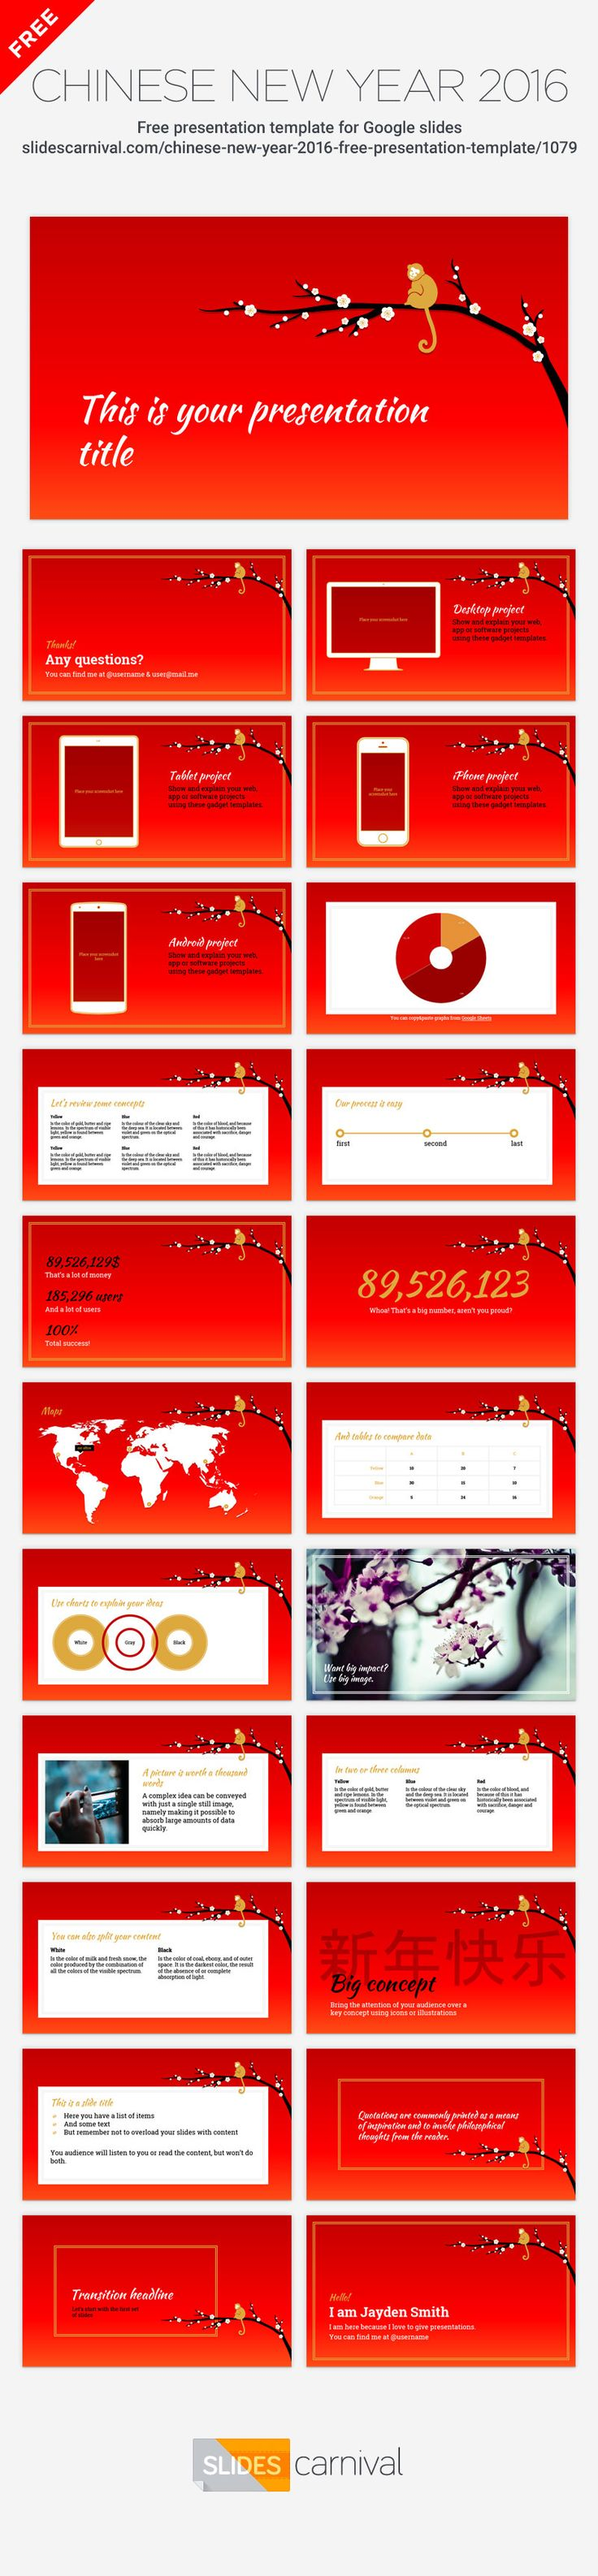 use this free presentation template to celebrate the chinese new, Presentation templates